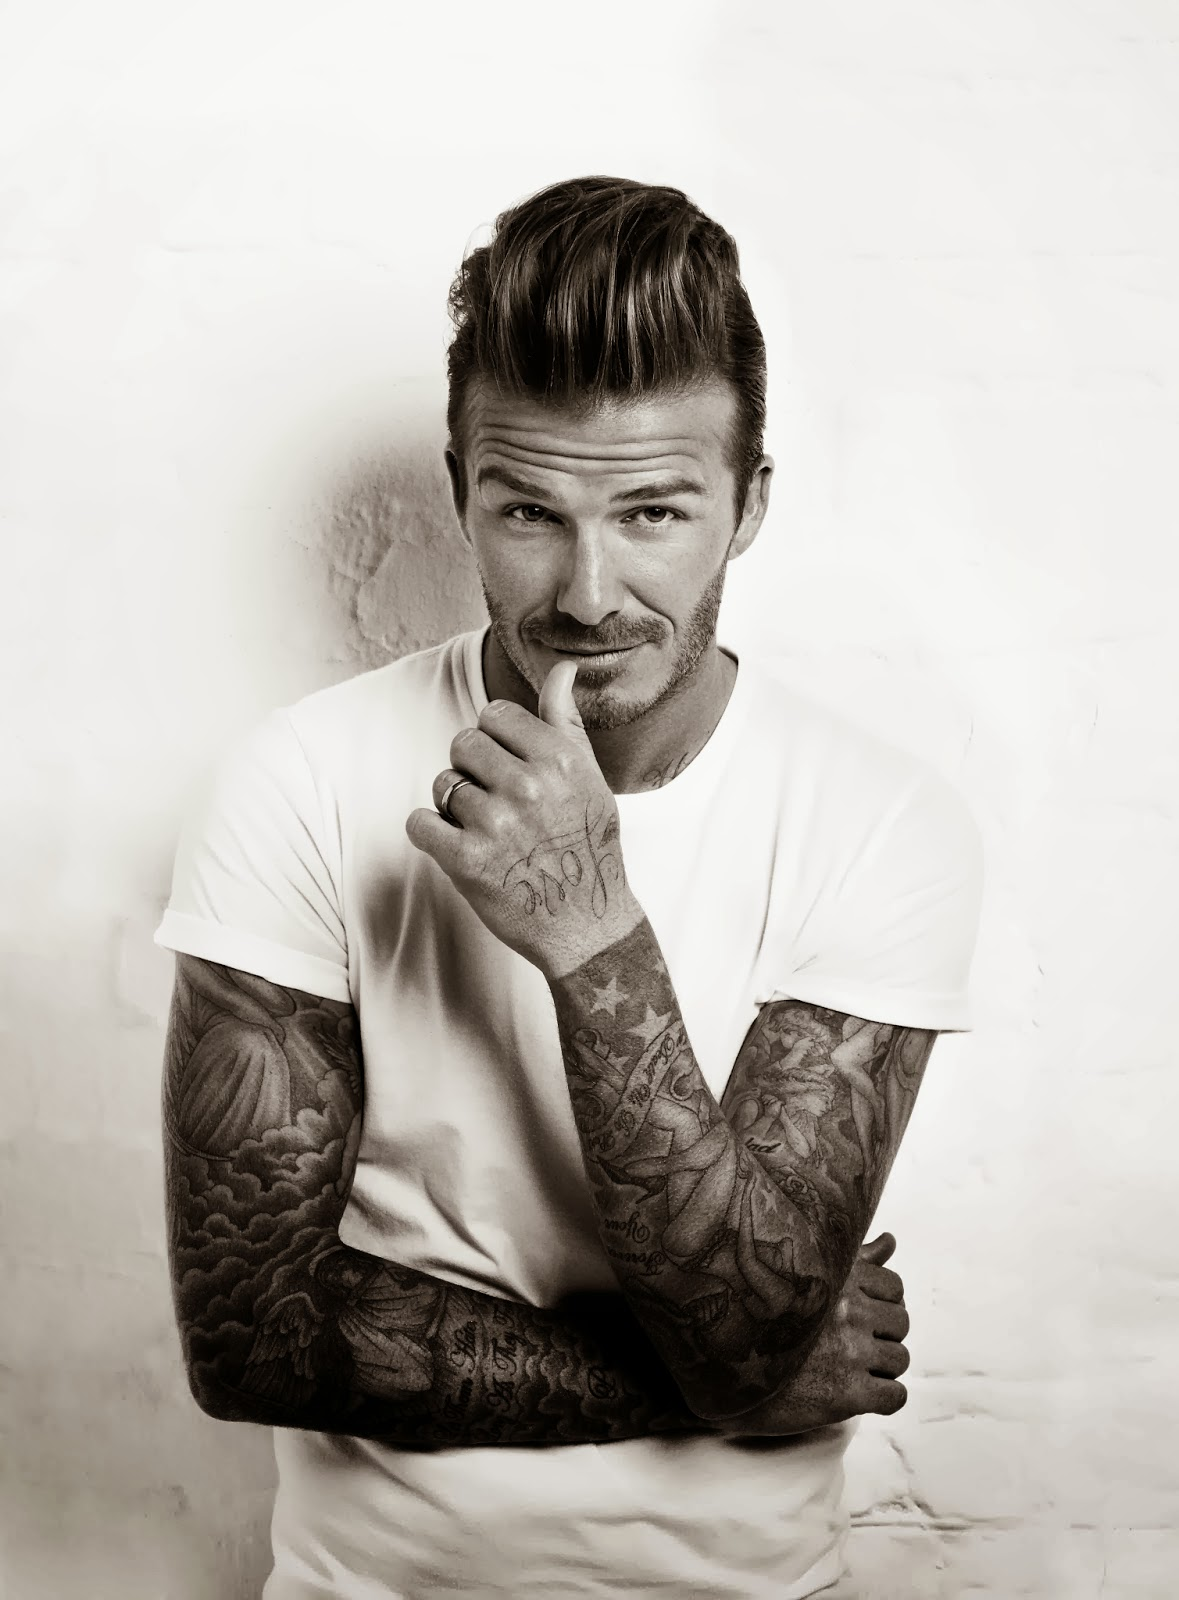 David Beckham has been known to change his appearance over the years, in particular his hair and choice of outfits. But as a little boy, the retired footballer looked almost unrecognisable.